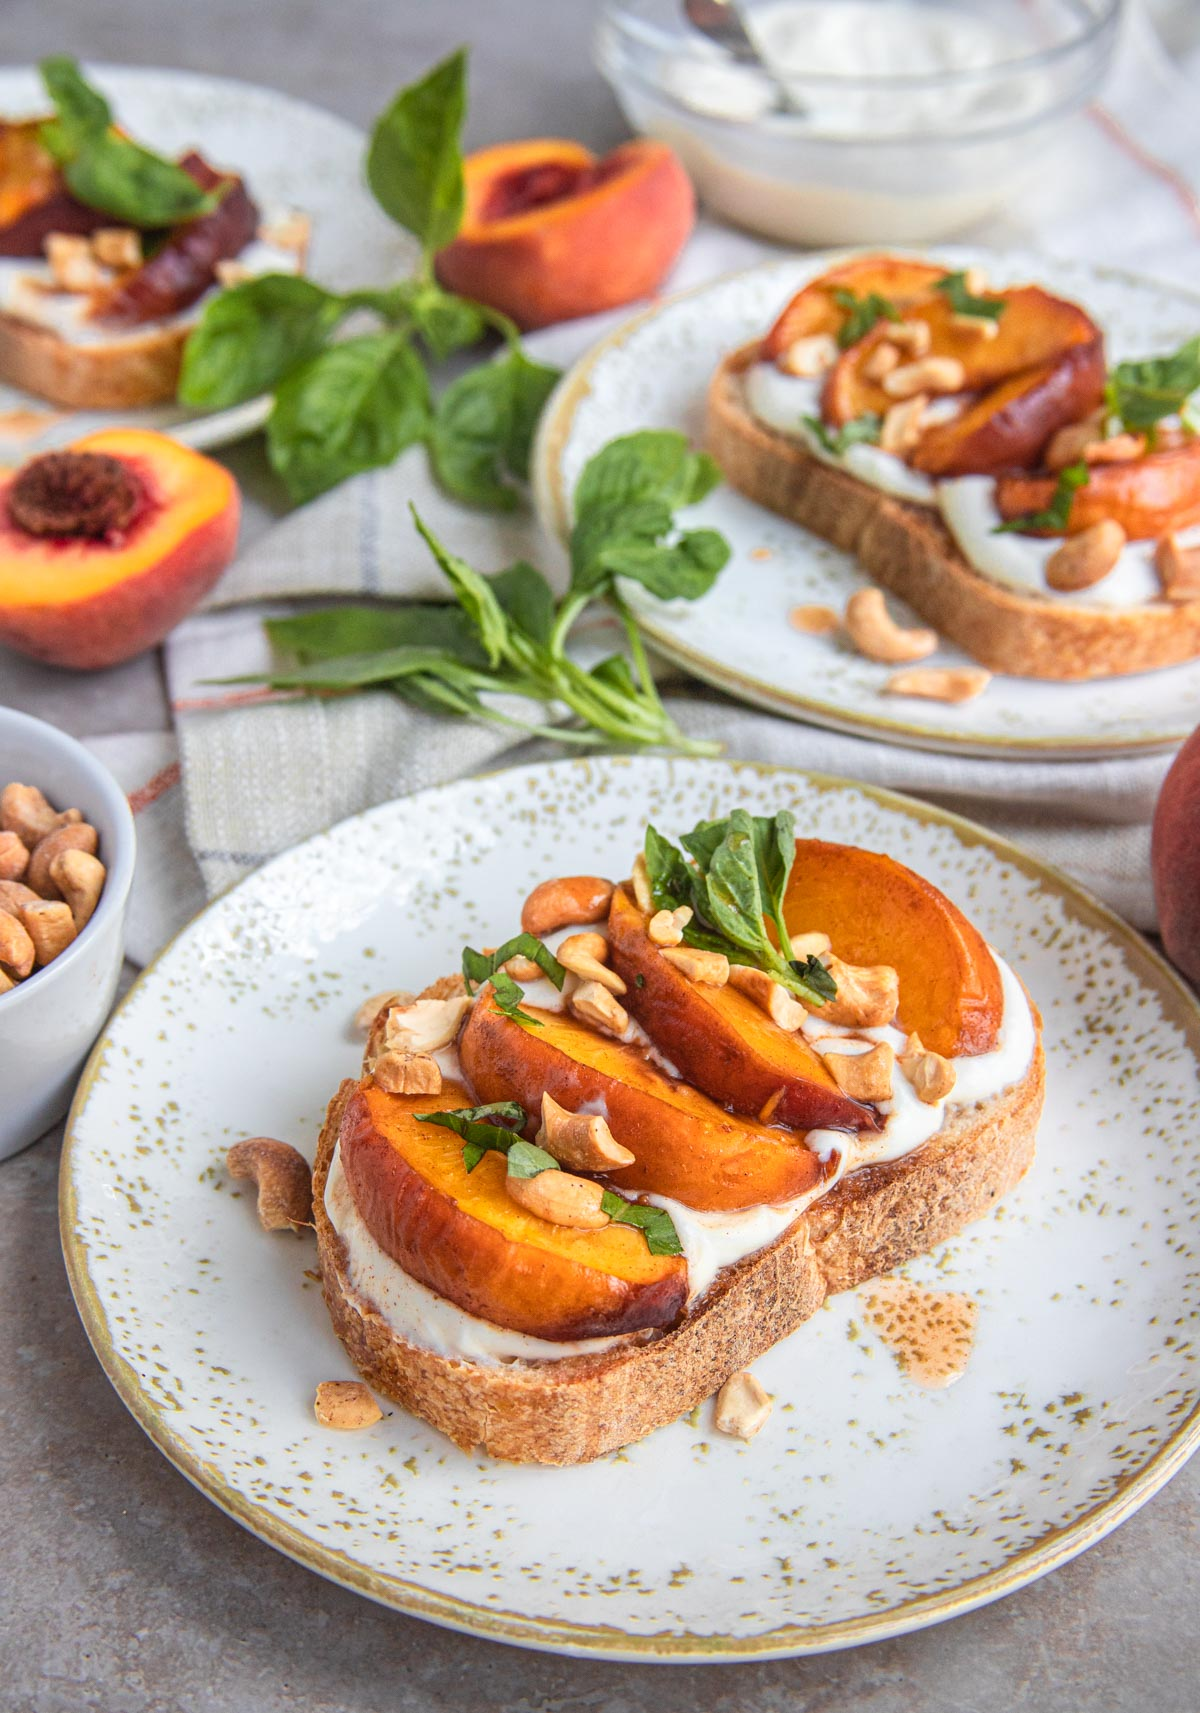 Roasted Peach and Ricotta Tartine on a plate with cashews, peaches and tartine in the background.